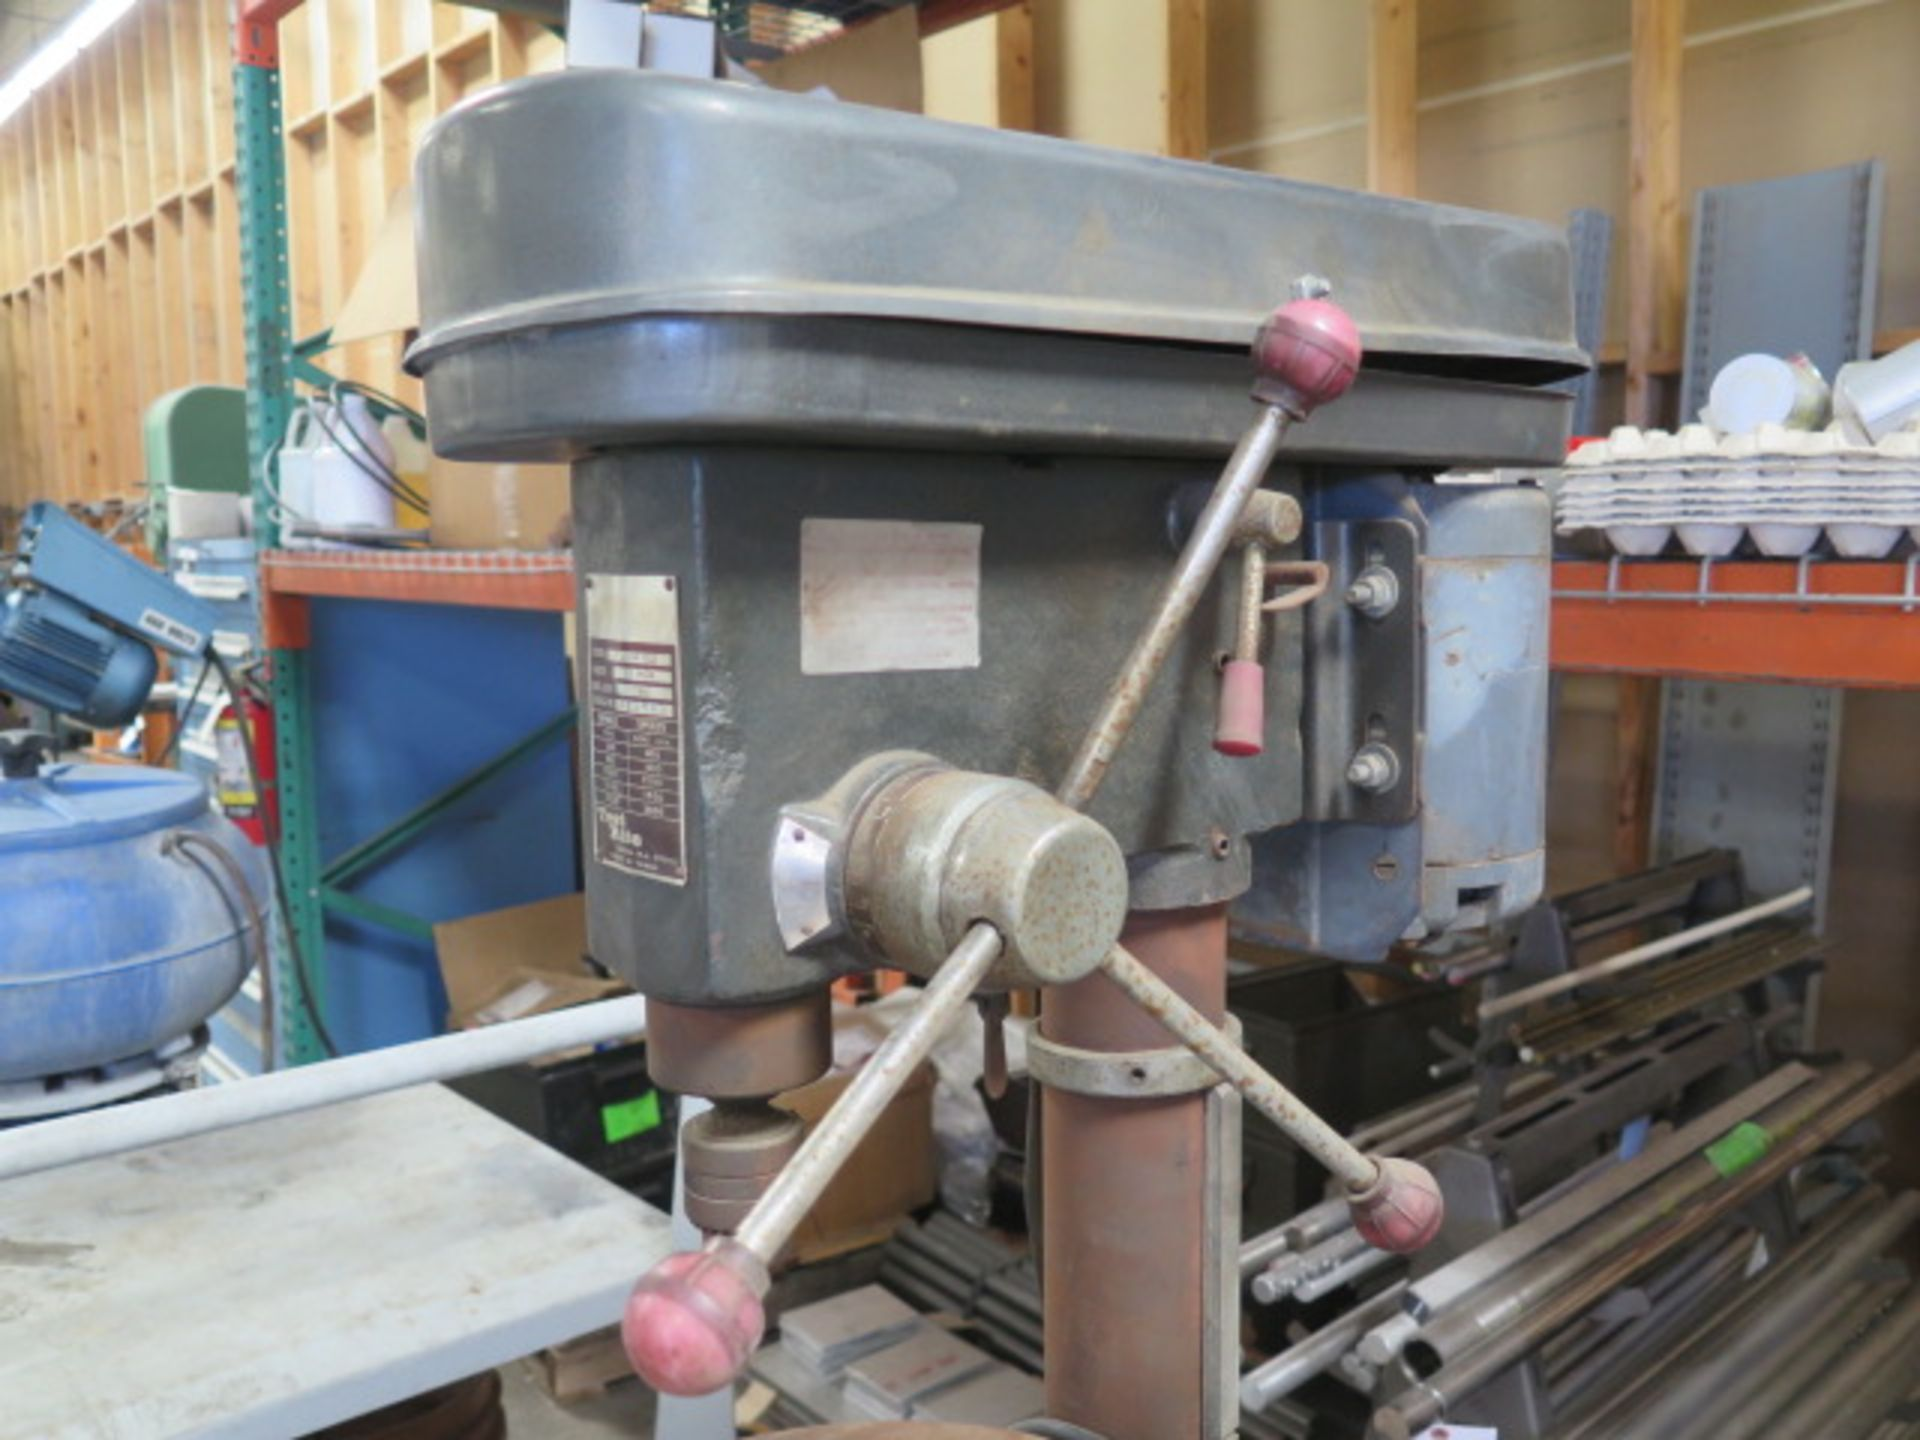 Test Rite Pedestal Drill Press (SOLD AS-IS - NO WARRANTY) - Image 4 of 6